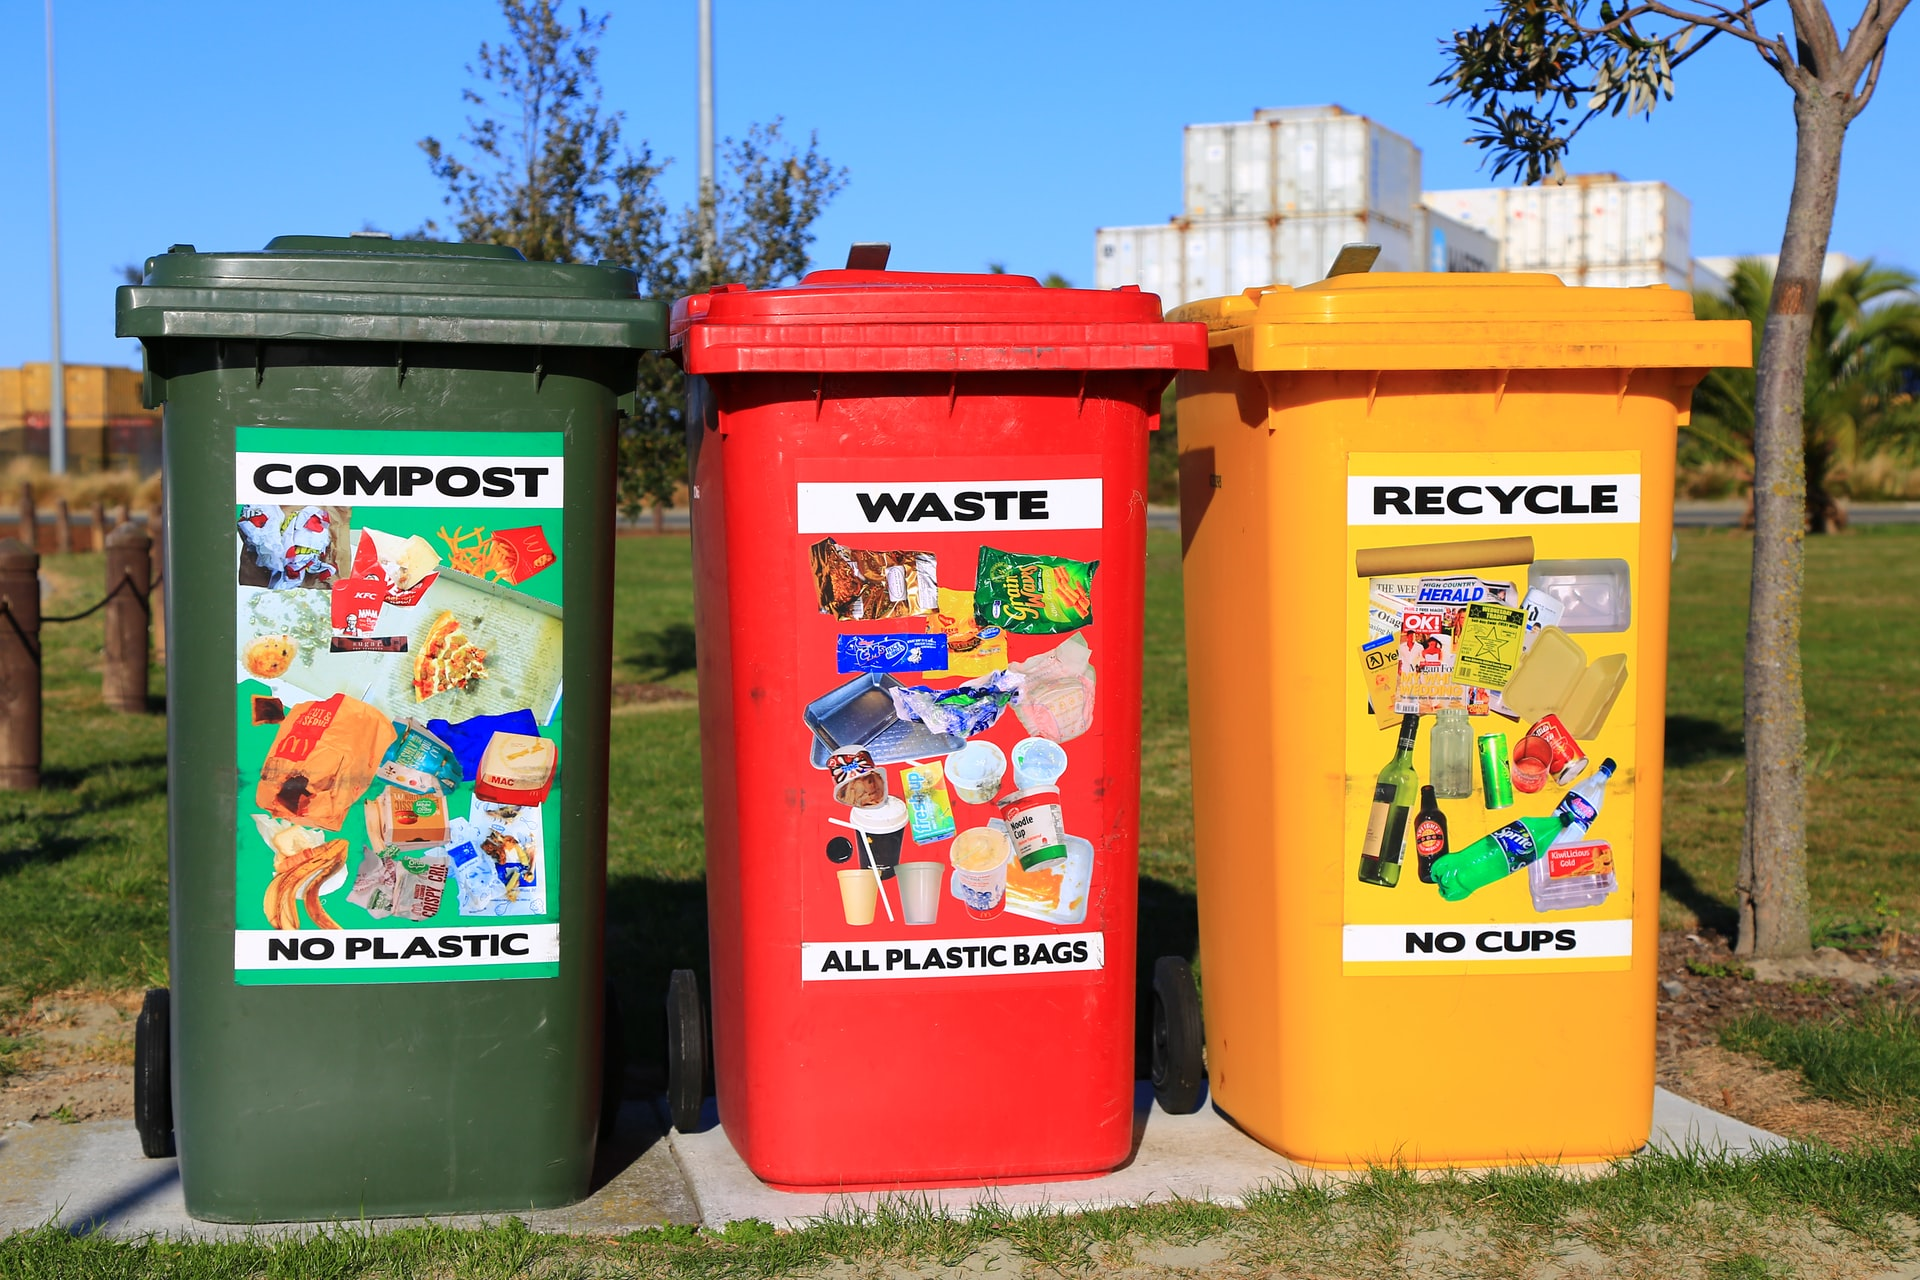 Three waste Baskets in green, red and yellow.